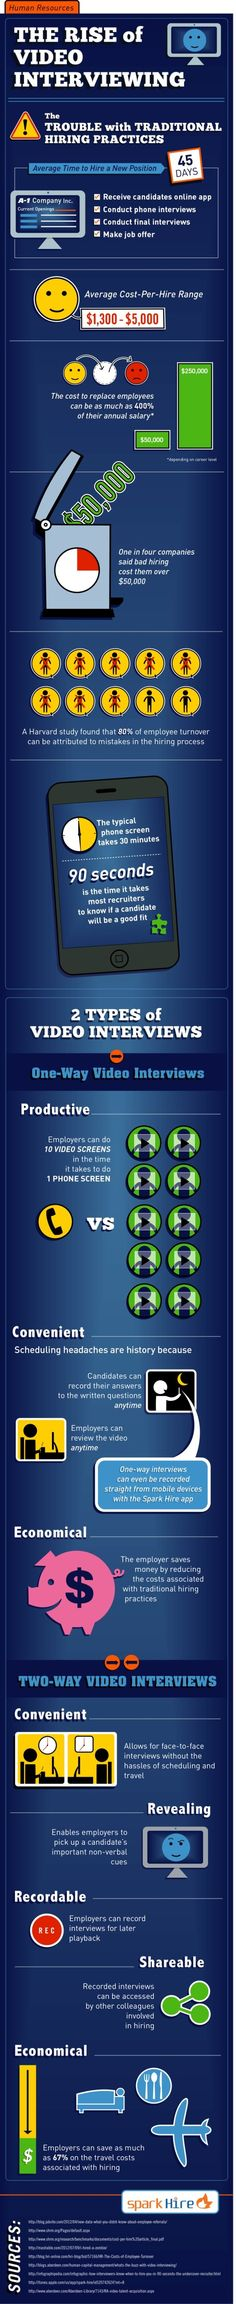 The Rise of Video Interviewing #Infographic #JobInterview